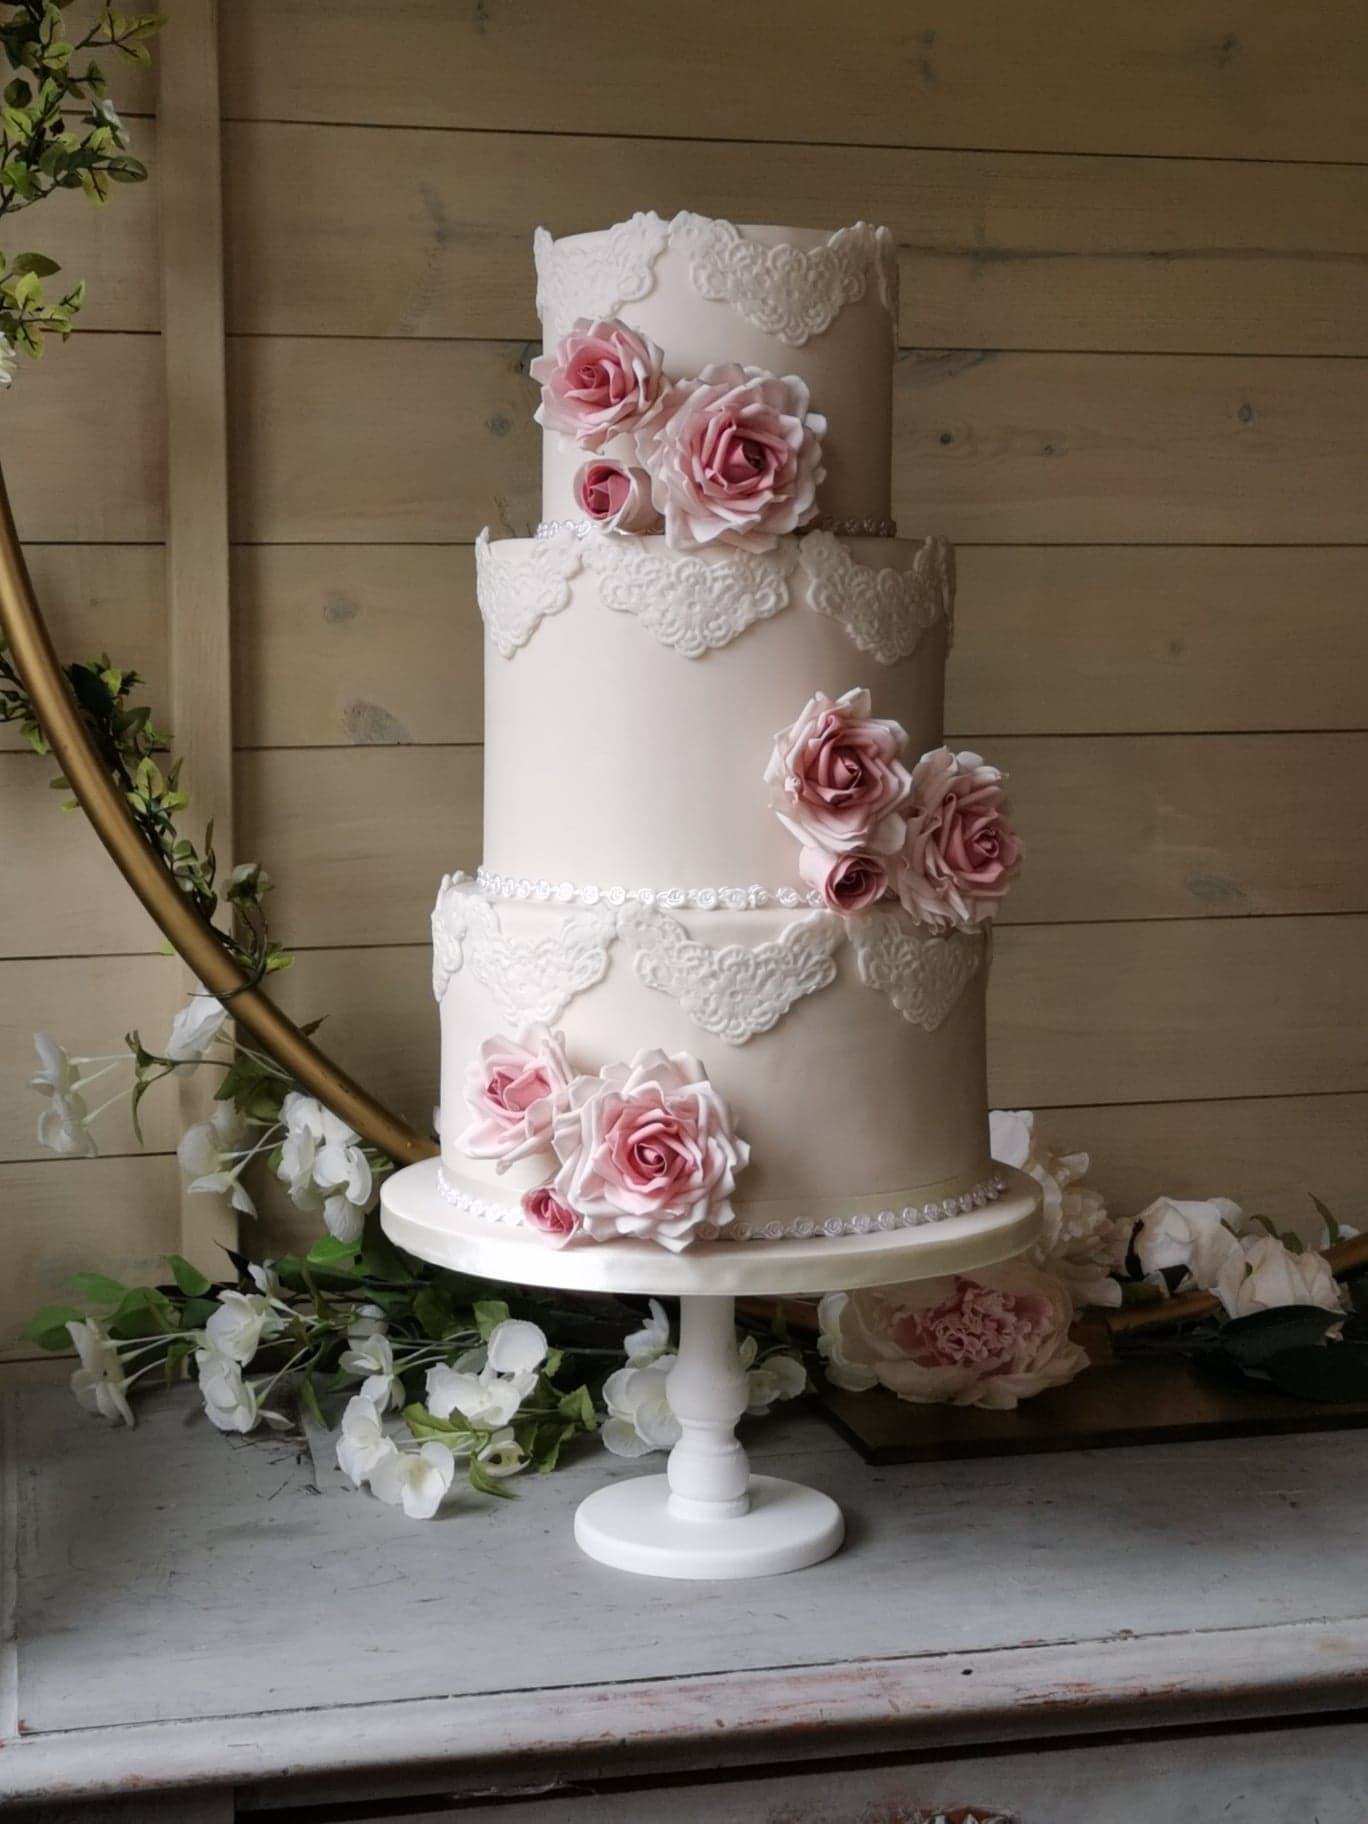 My Little Studio - Creative wedding cakes - individual wedding cakes - alternative wedding cakes 4